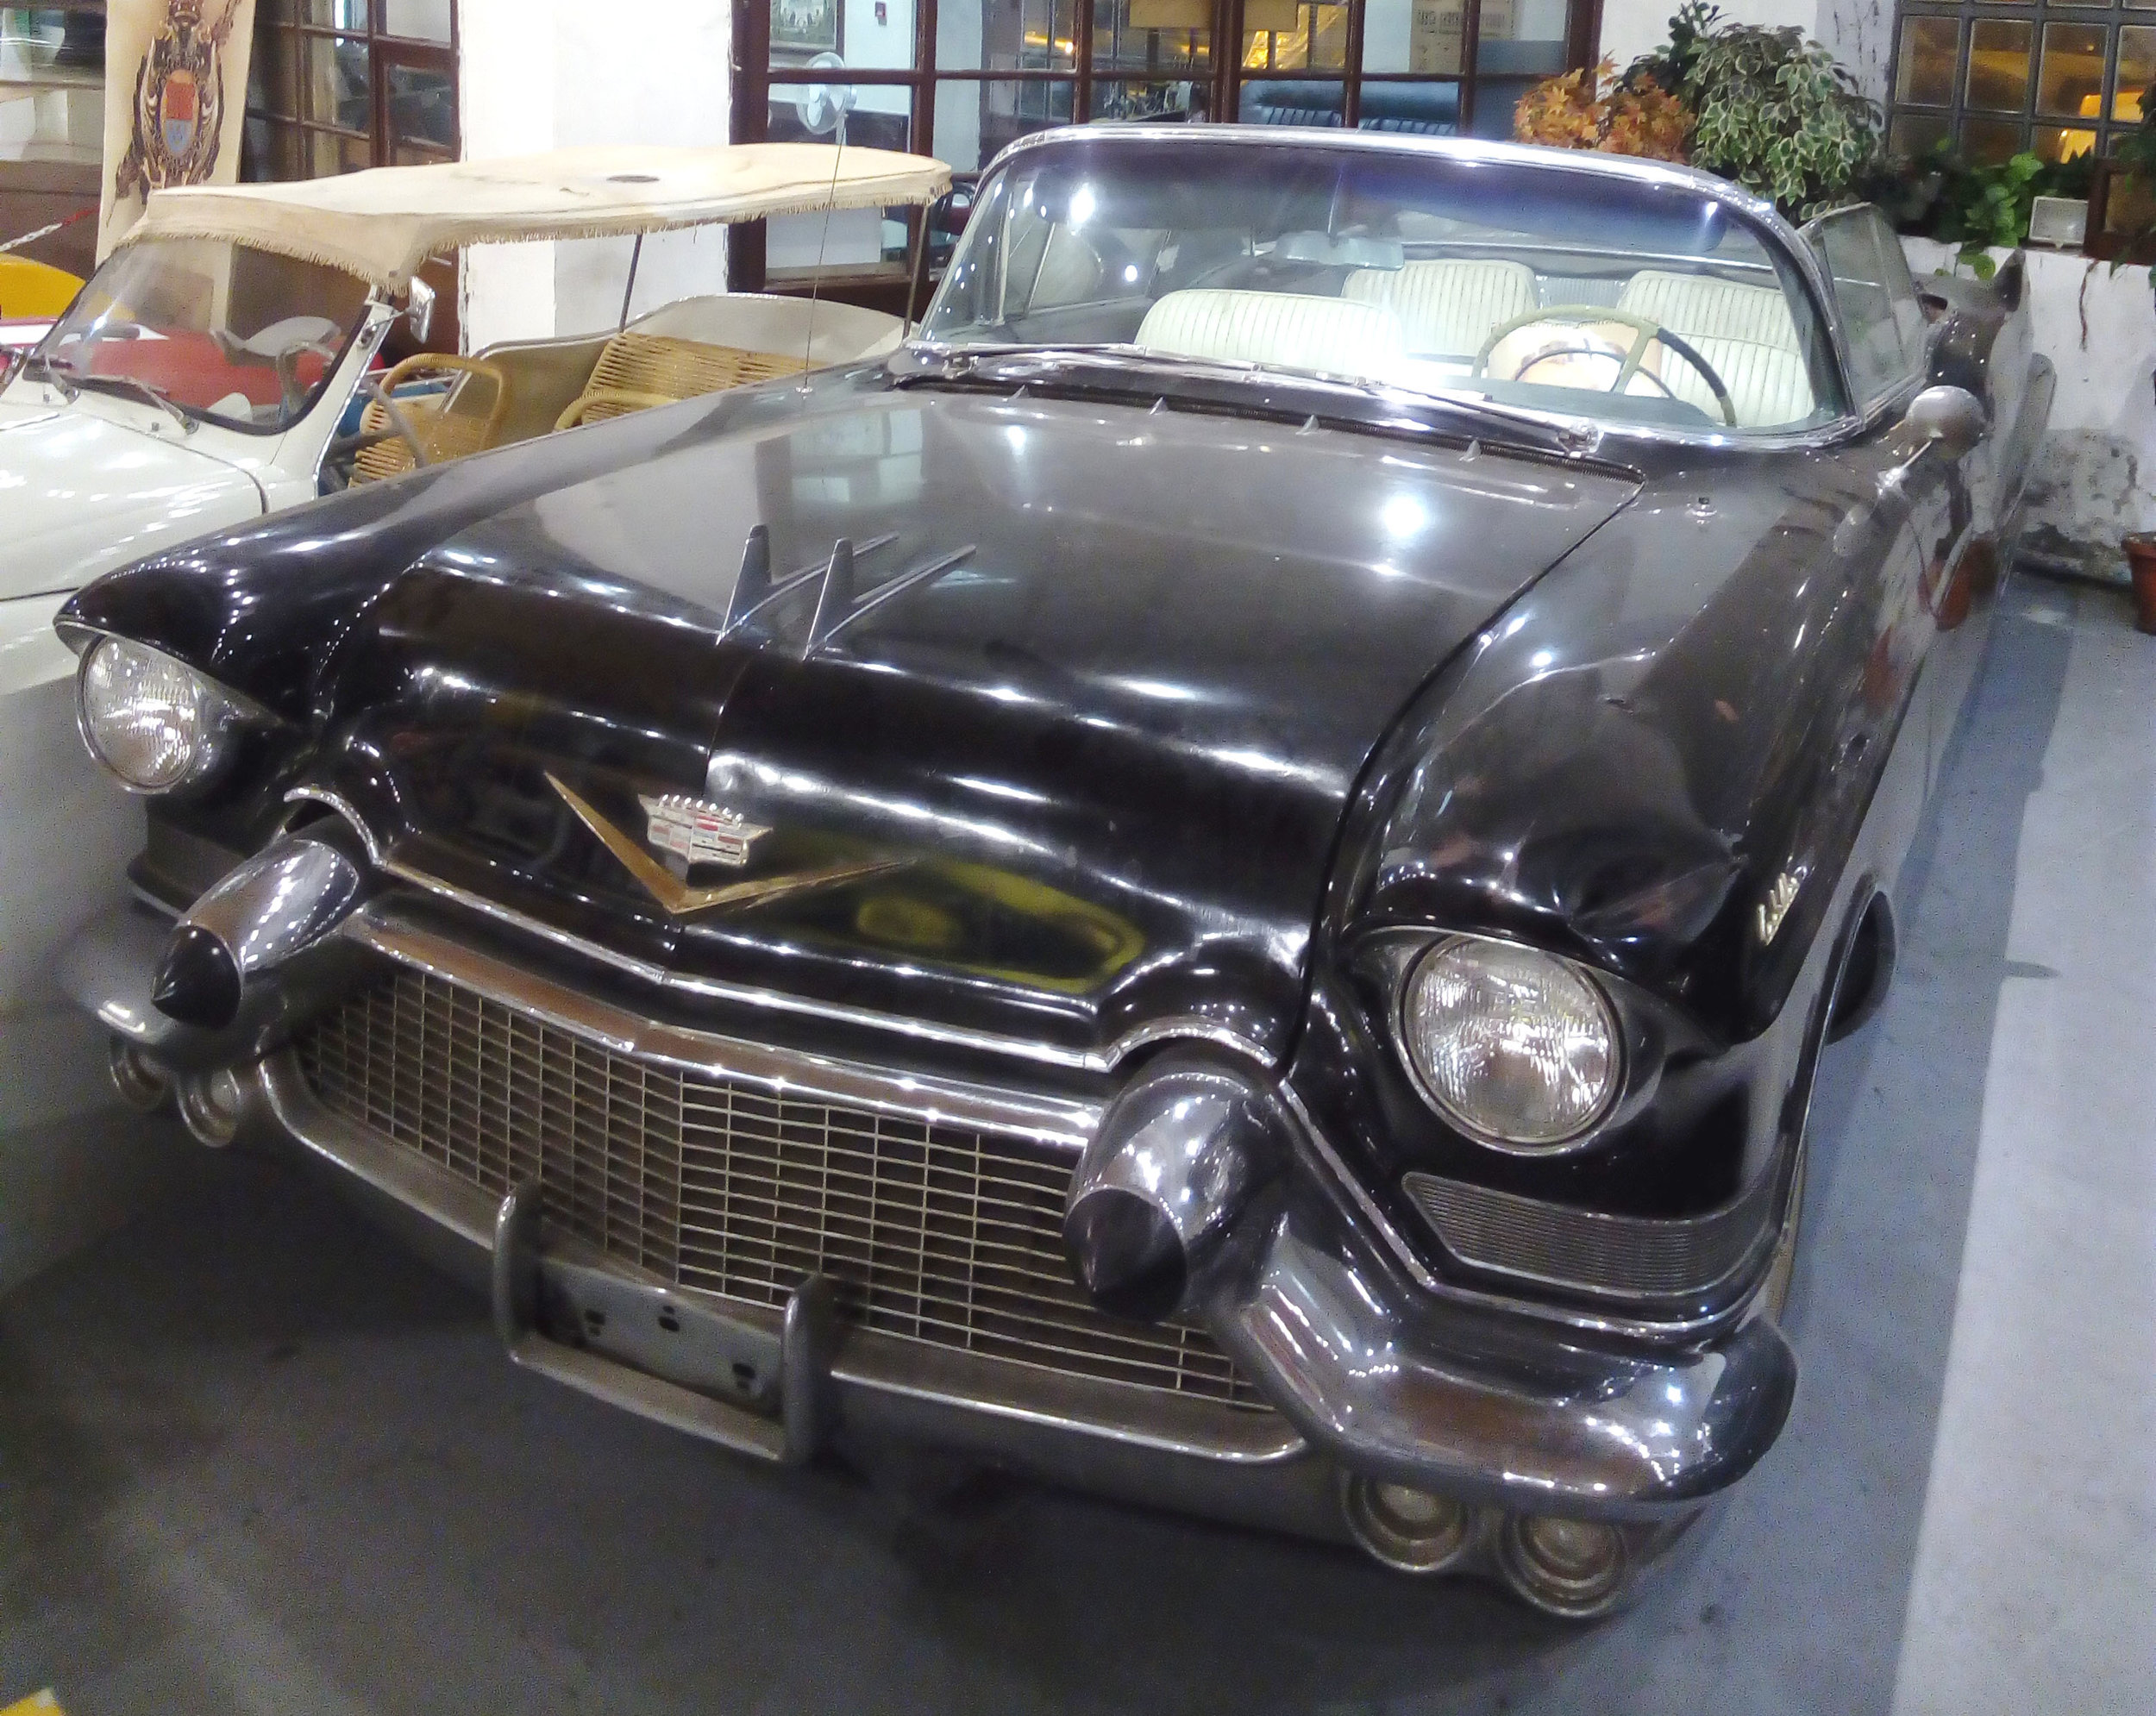 Marshall Tito's Cadillac in Belgrade's Car Museum